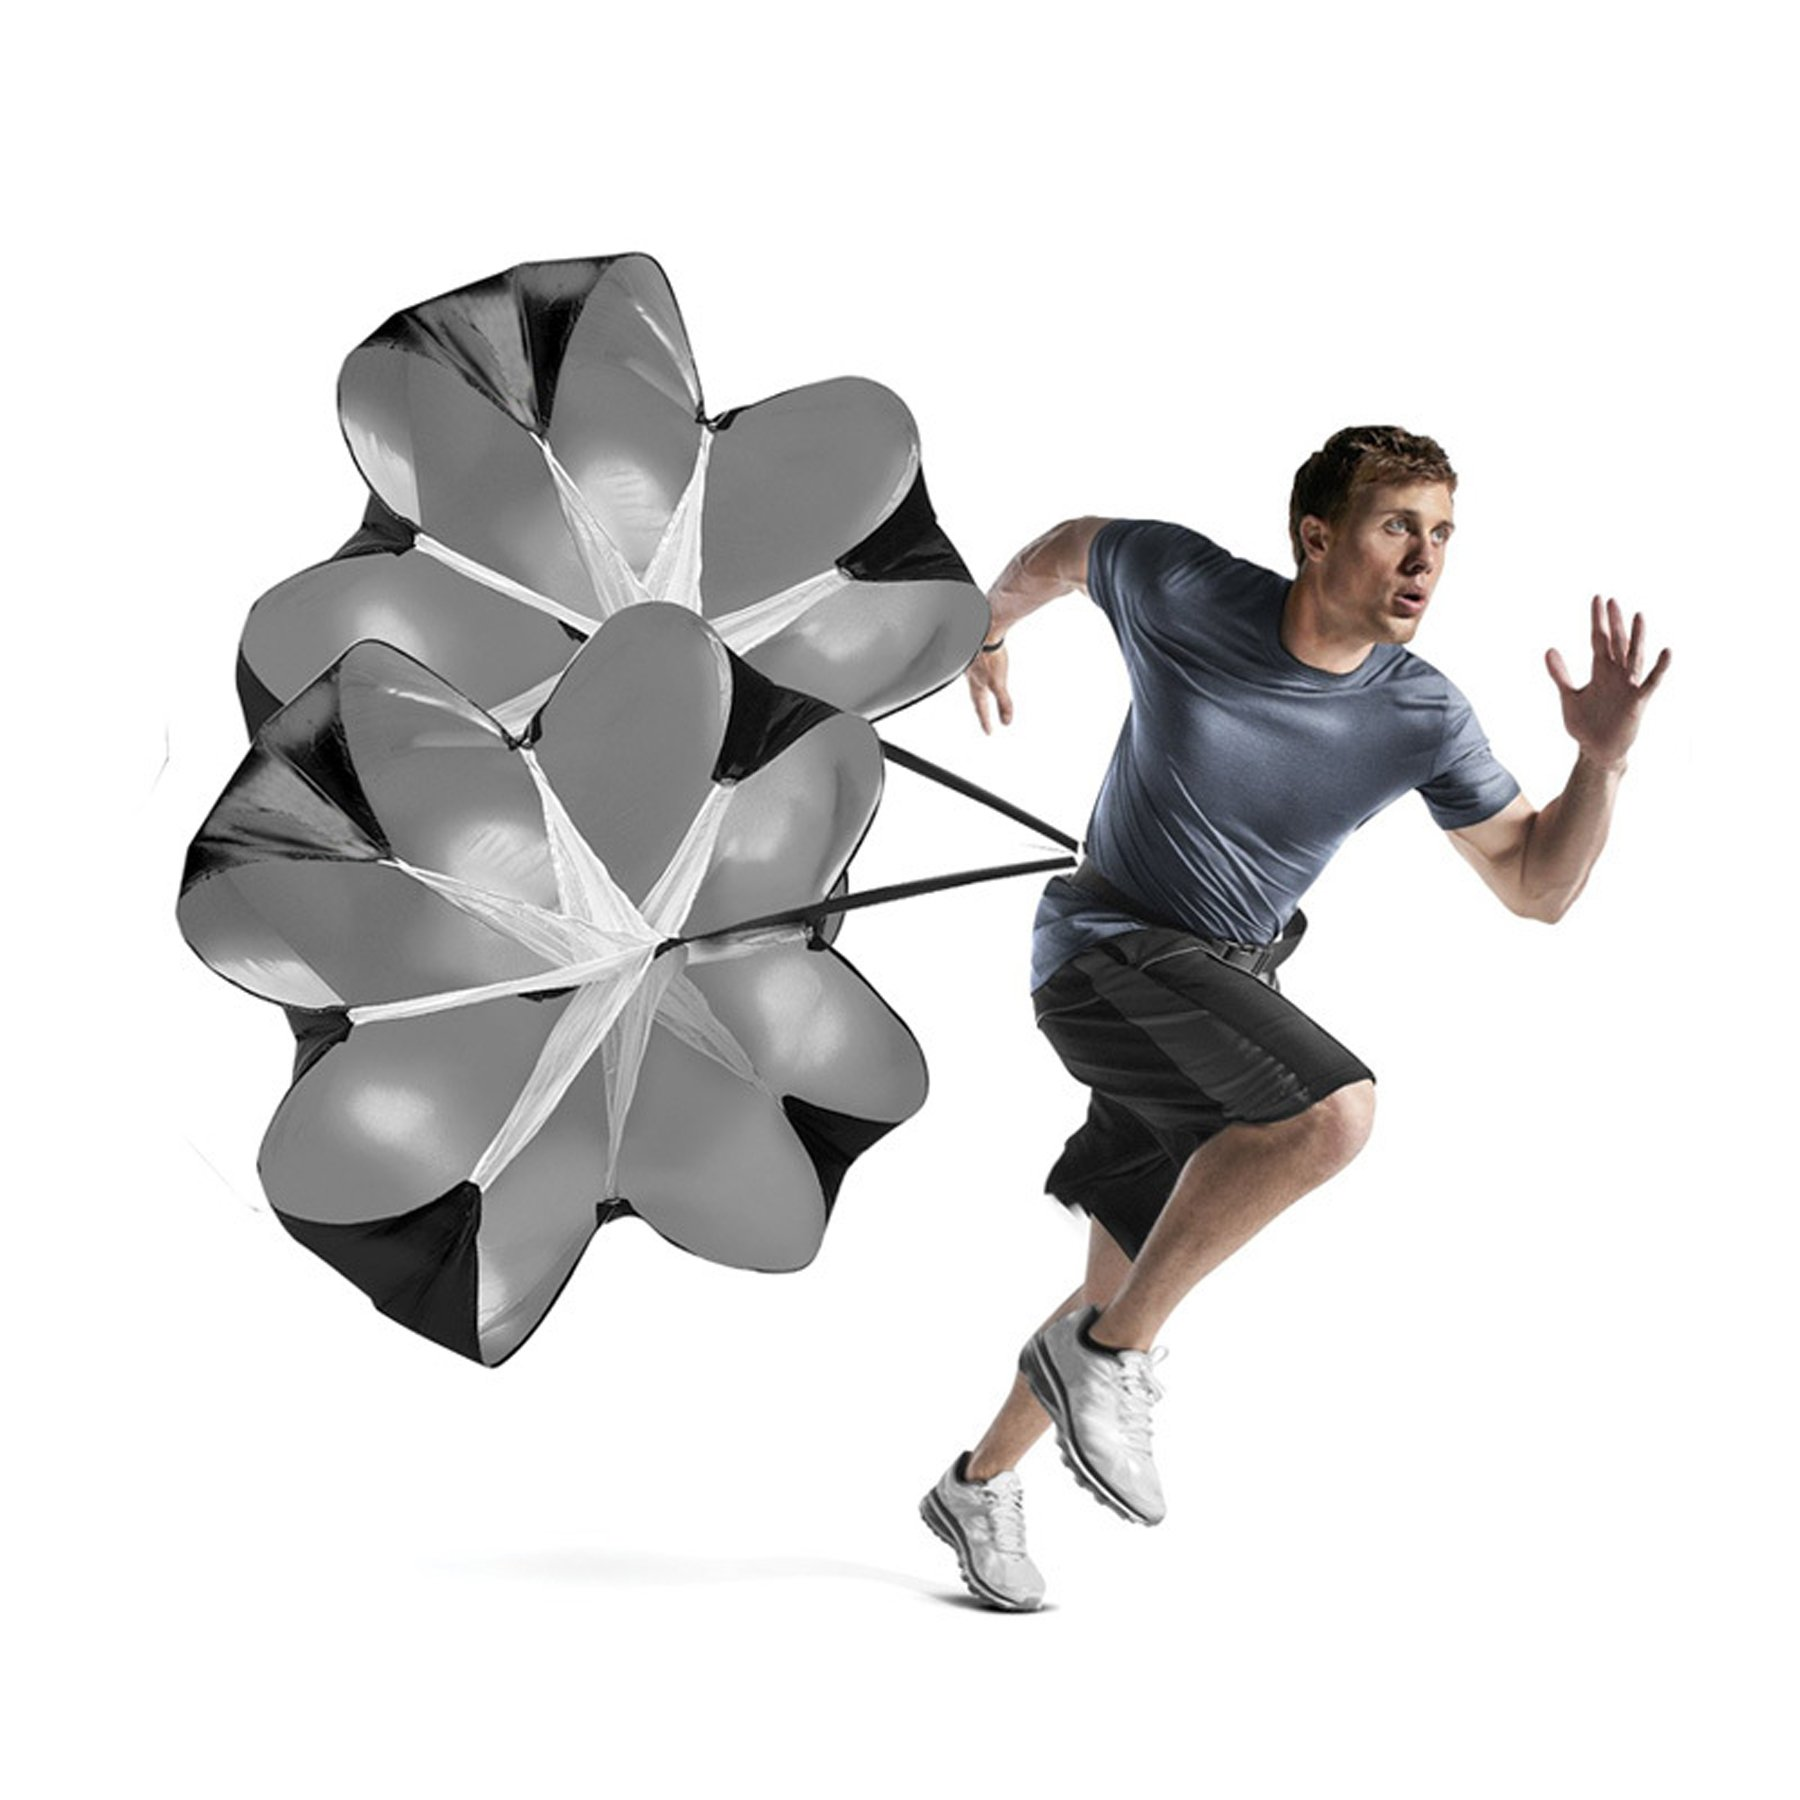 Micogo 58'' Resistance Speed Training Parachute & Fitness Explosive Power Training Equipment,with 2 Umbrella